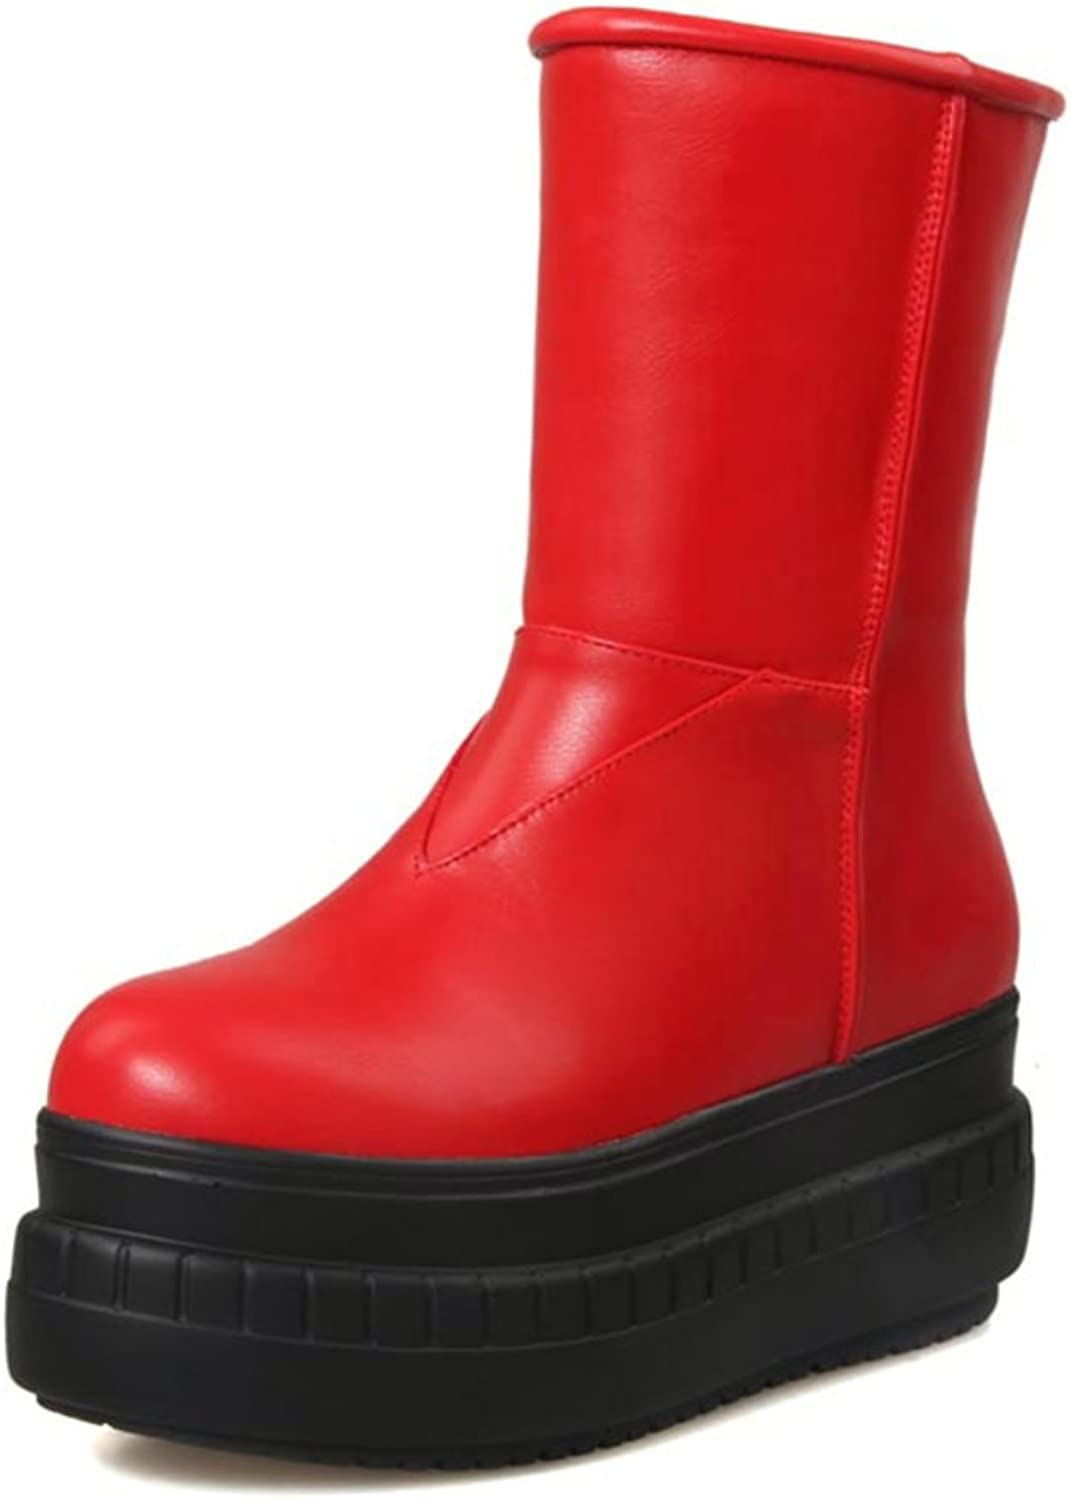 RHFDVGDS Autumn and winter fashion boots Ladies snow boots thick-soled platform boots Casual warm women's boots